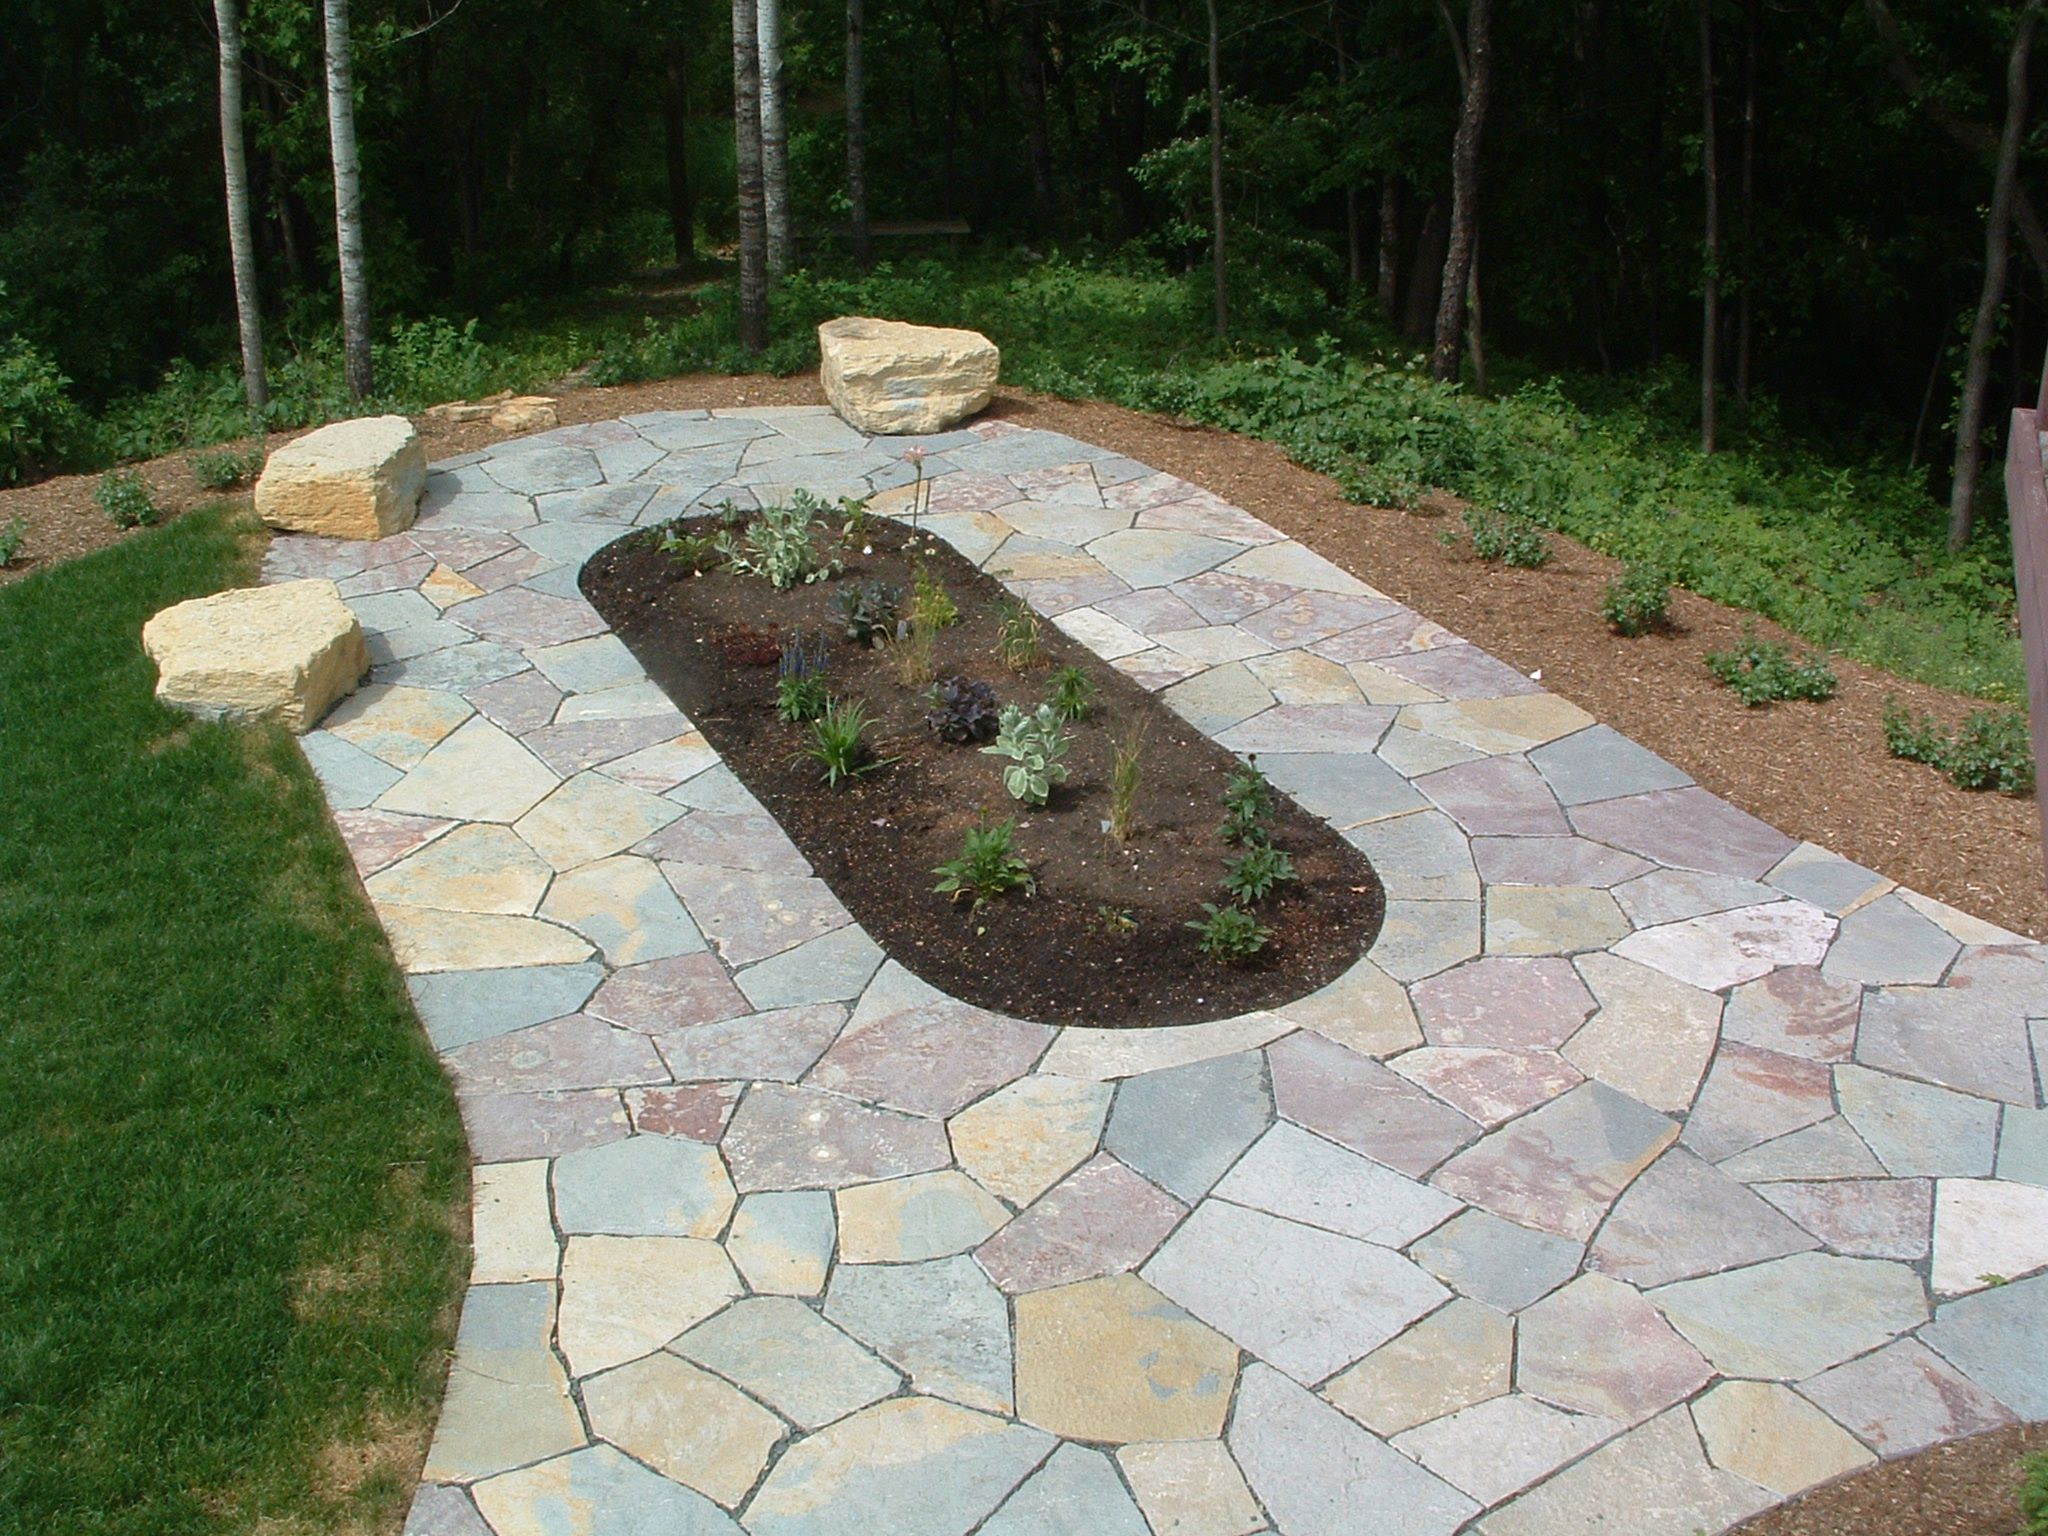 Natural stone patio walkway with flower bed and boulder seating landscape ideas pinterest for Natural stone walkways